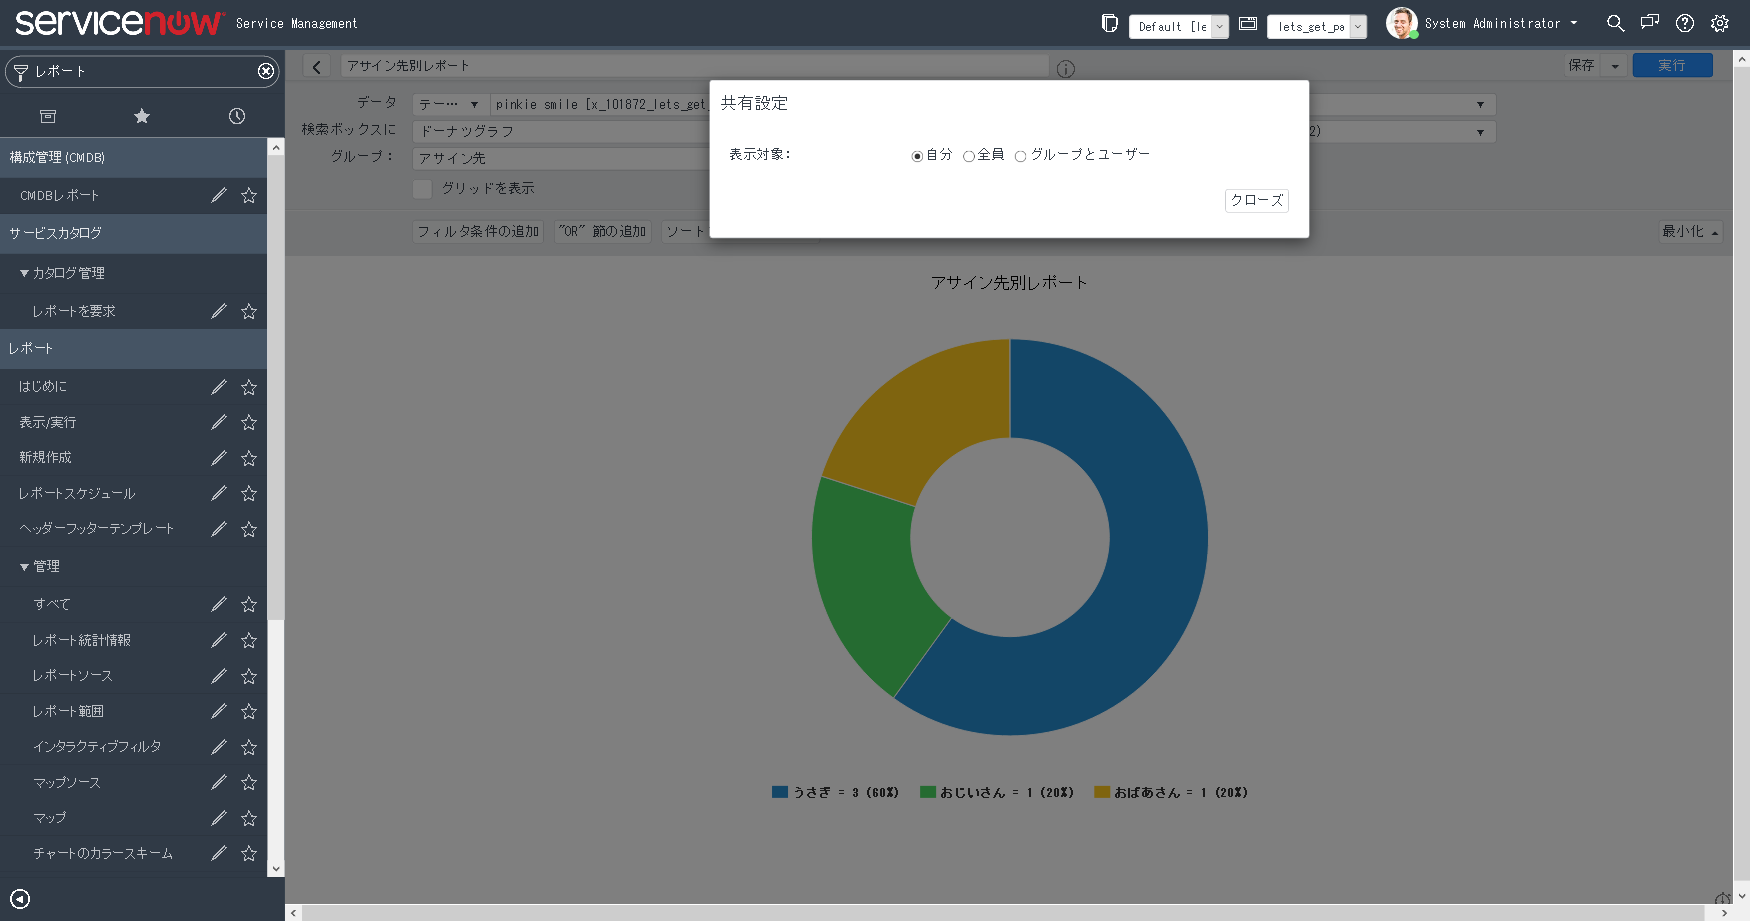 FireShot Screen Capture #166 - 'アサイン先別レポート I ServiceNow' - dev12747_service-now_com_nav_to_do_uri=%2Fsys_report_template_do%3Fjvar_report_id%3Db9b45b3.png